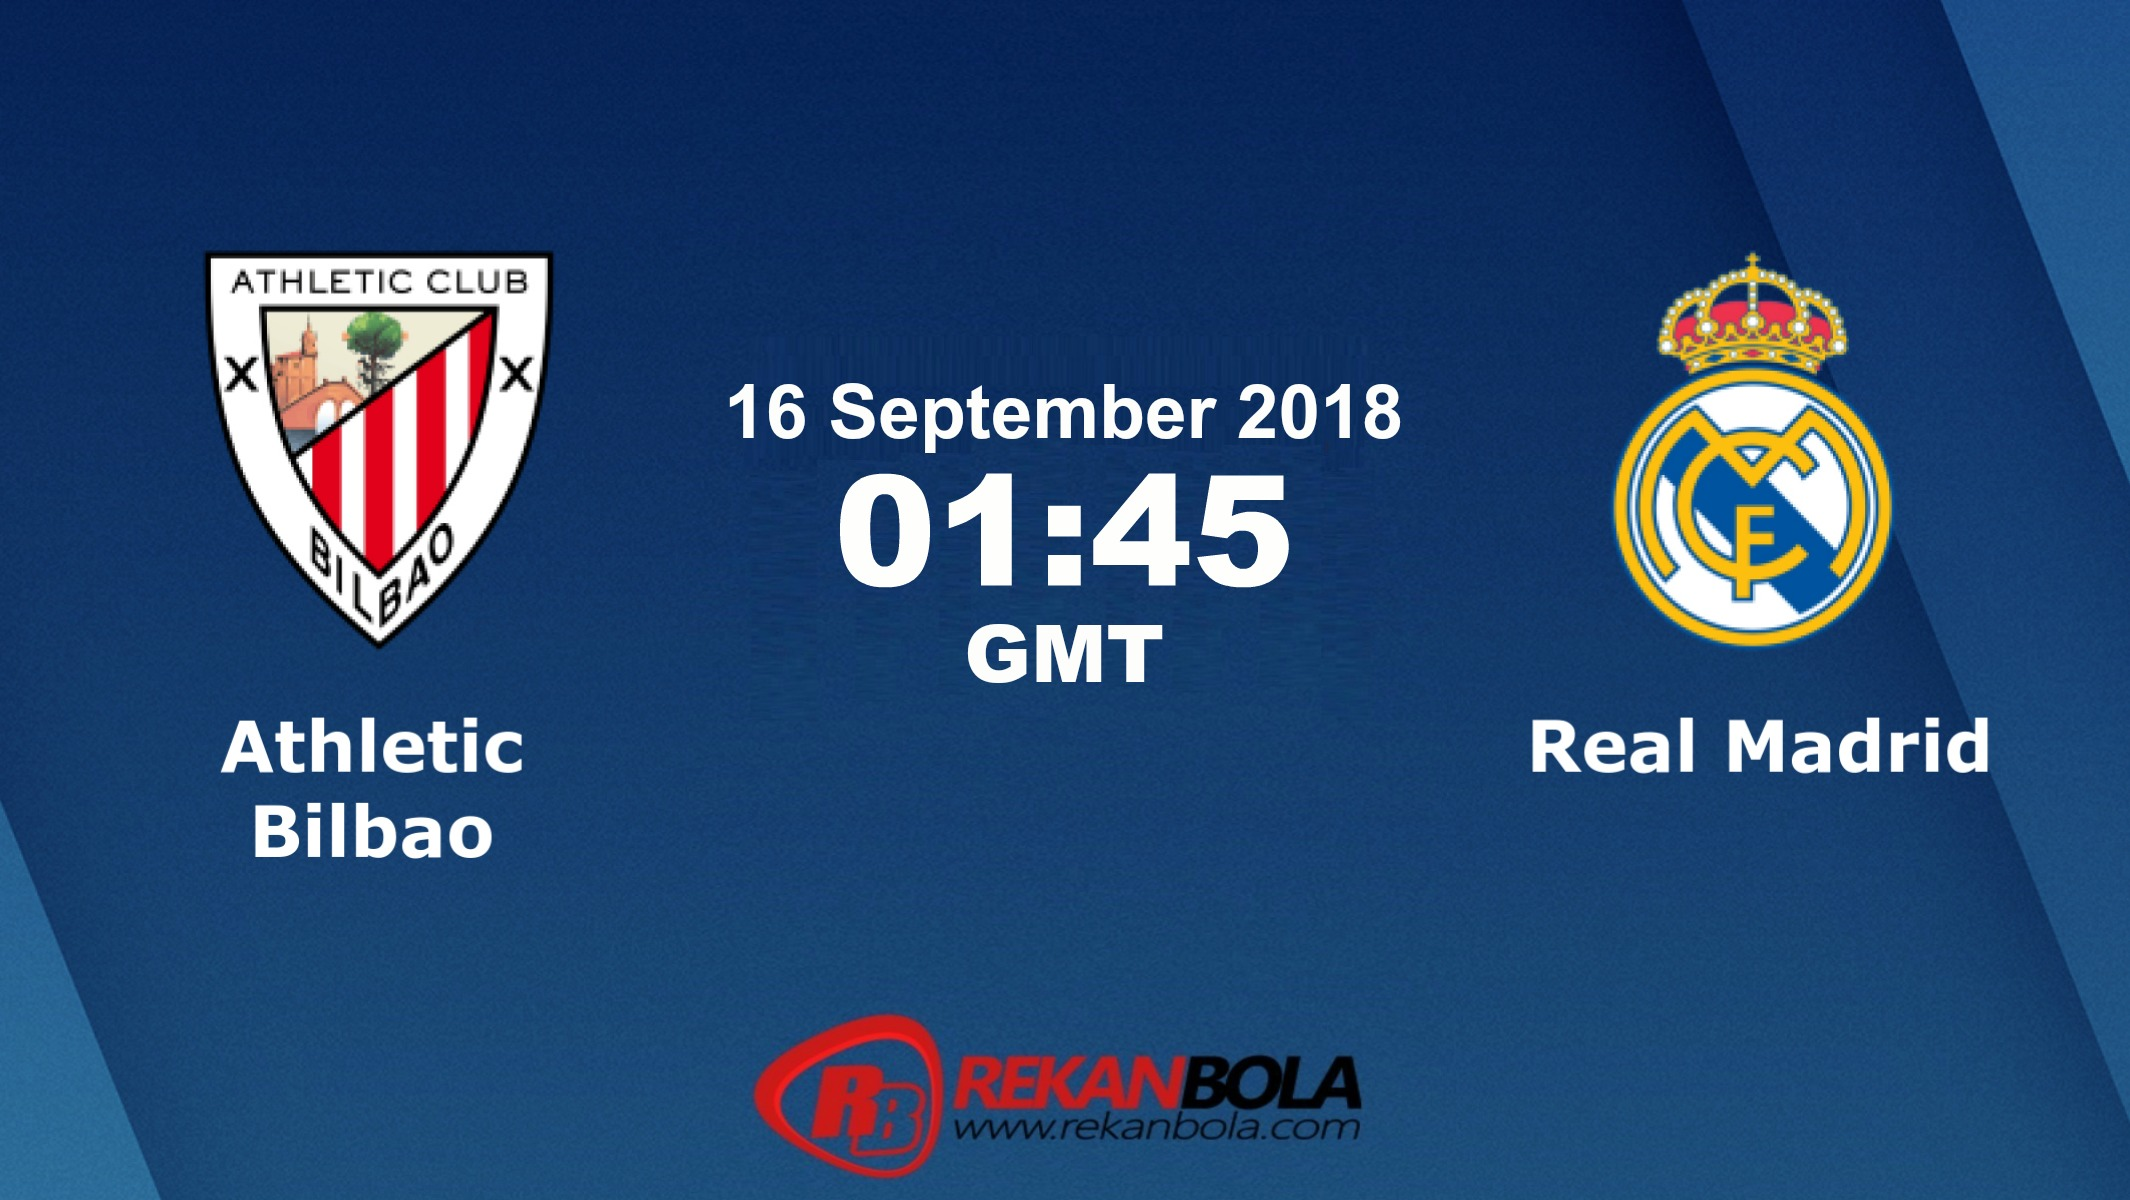 Nonton Siaran Live Streaming Bilbao Vs Madrid 16 September 2018